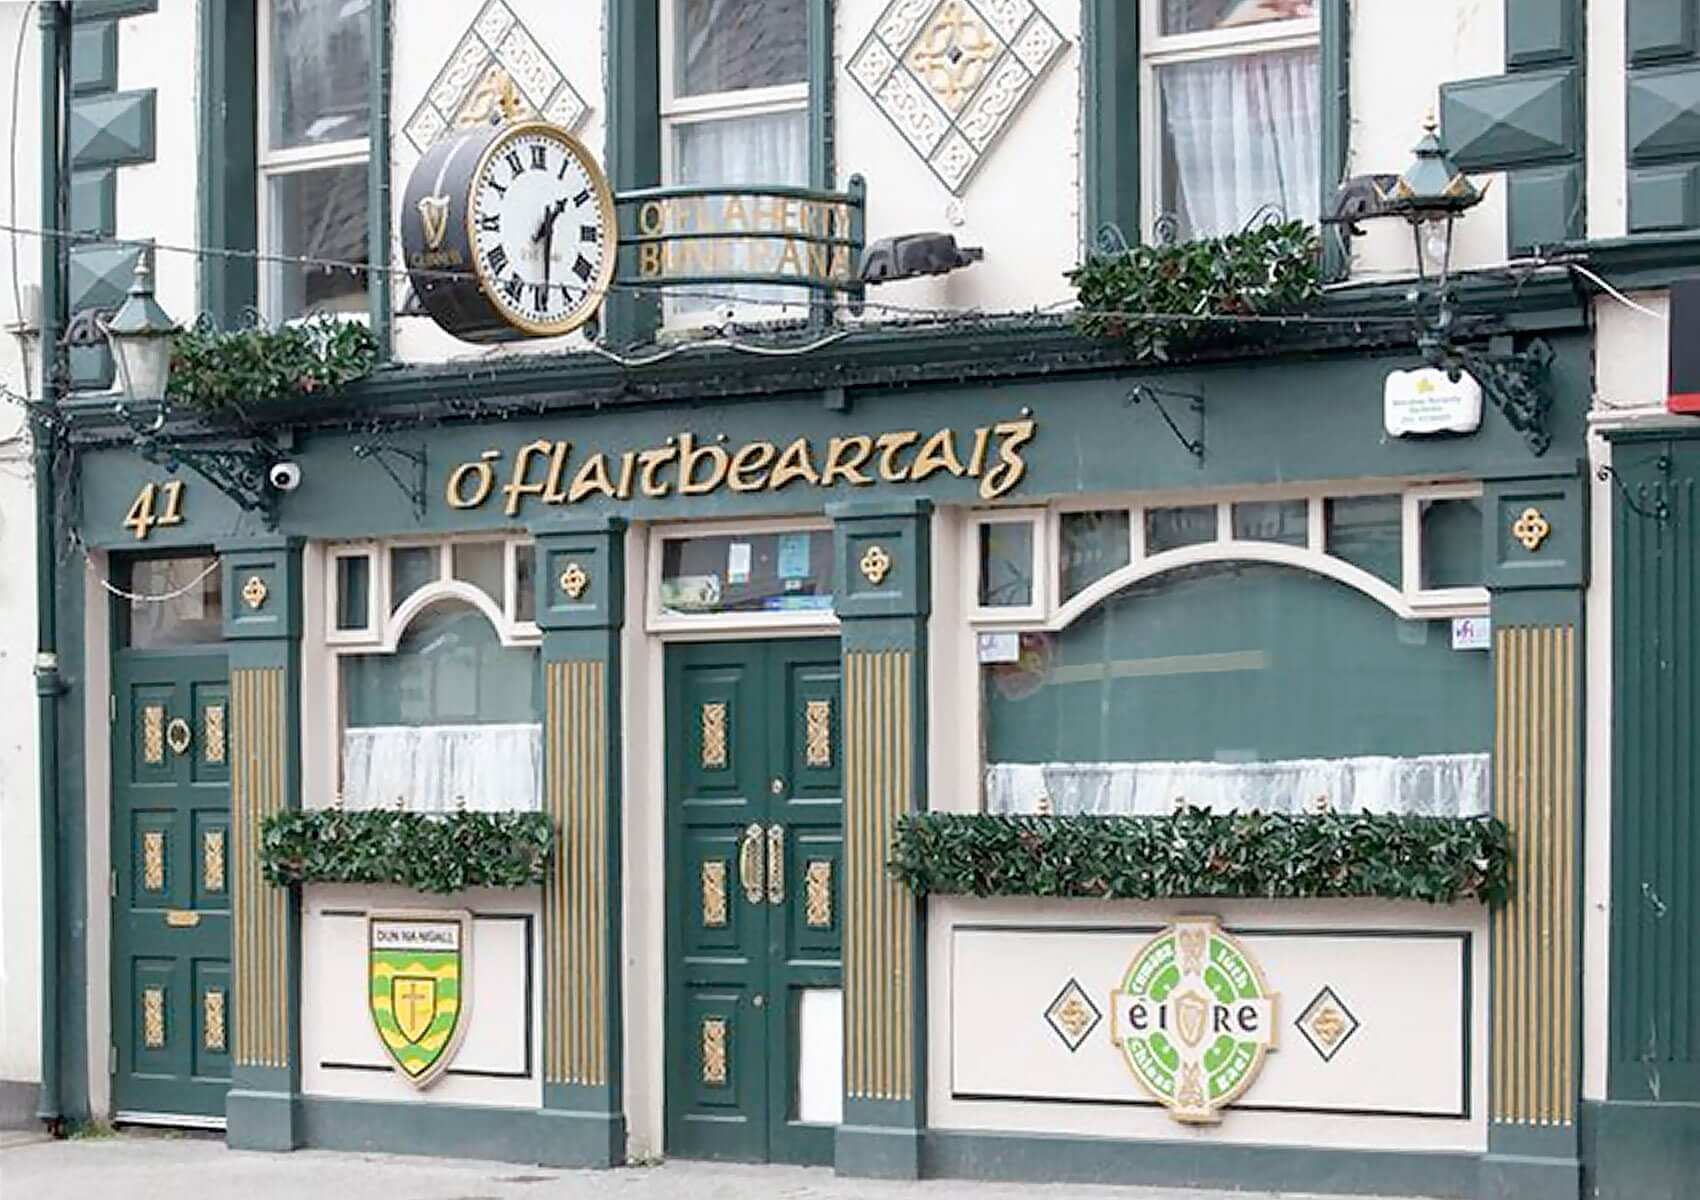 Outside the entrance to O'Flaherty's pub in Buncrana, County Donegal, Ireland